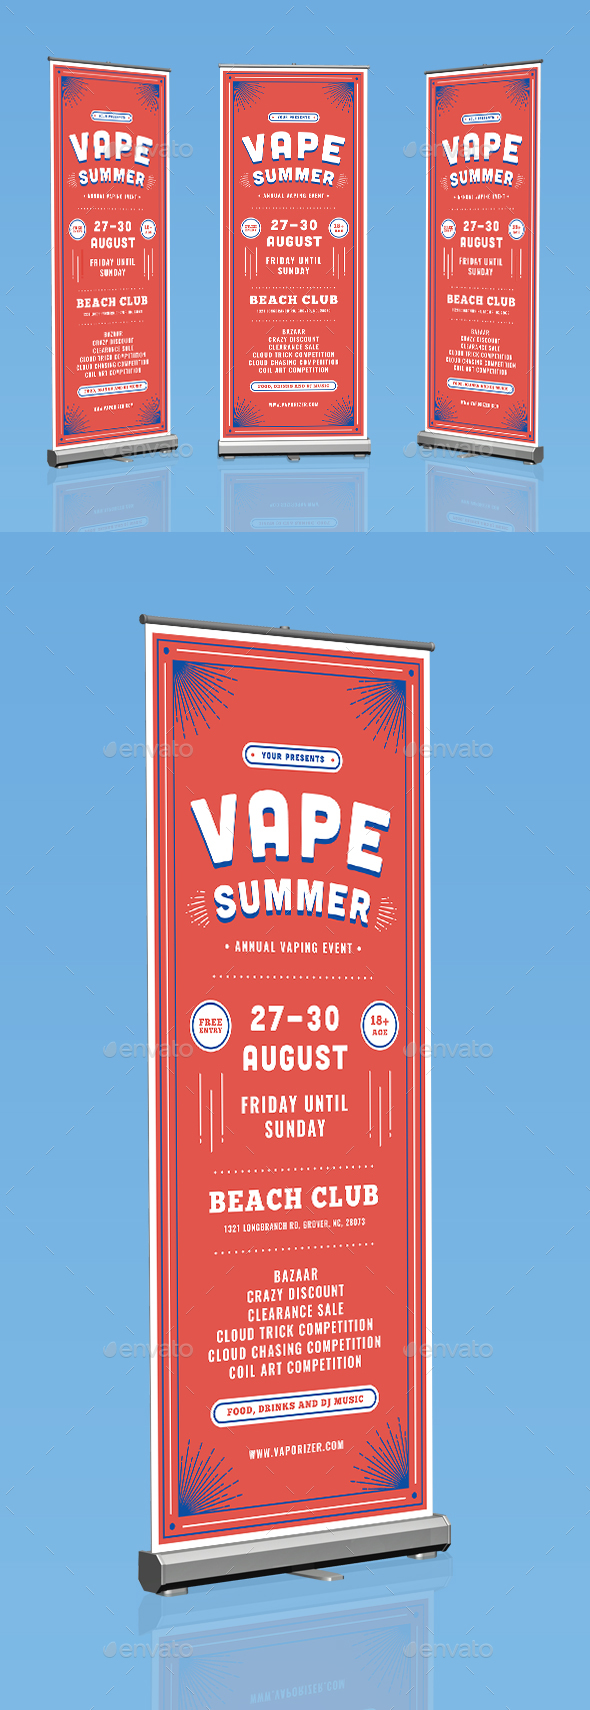 Vape Summer Roll Up Banner - Signage Print Templates